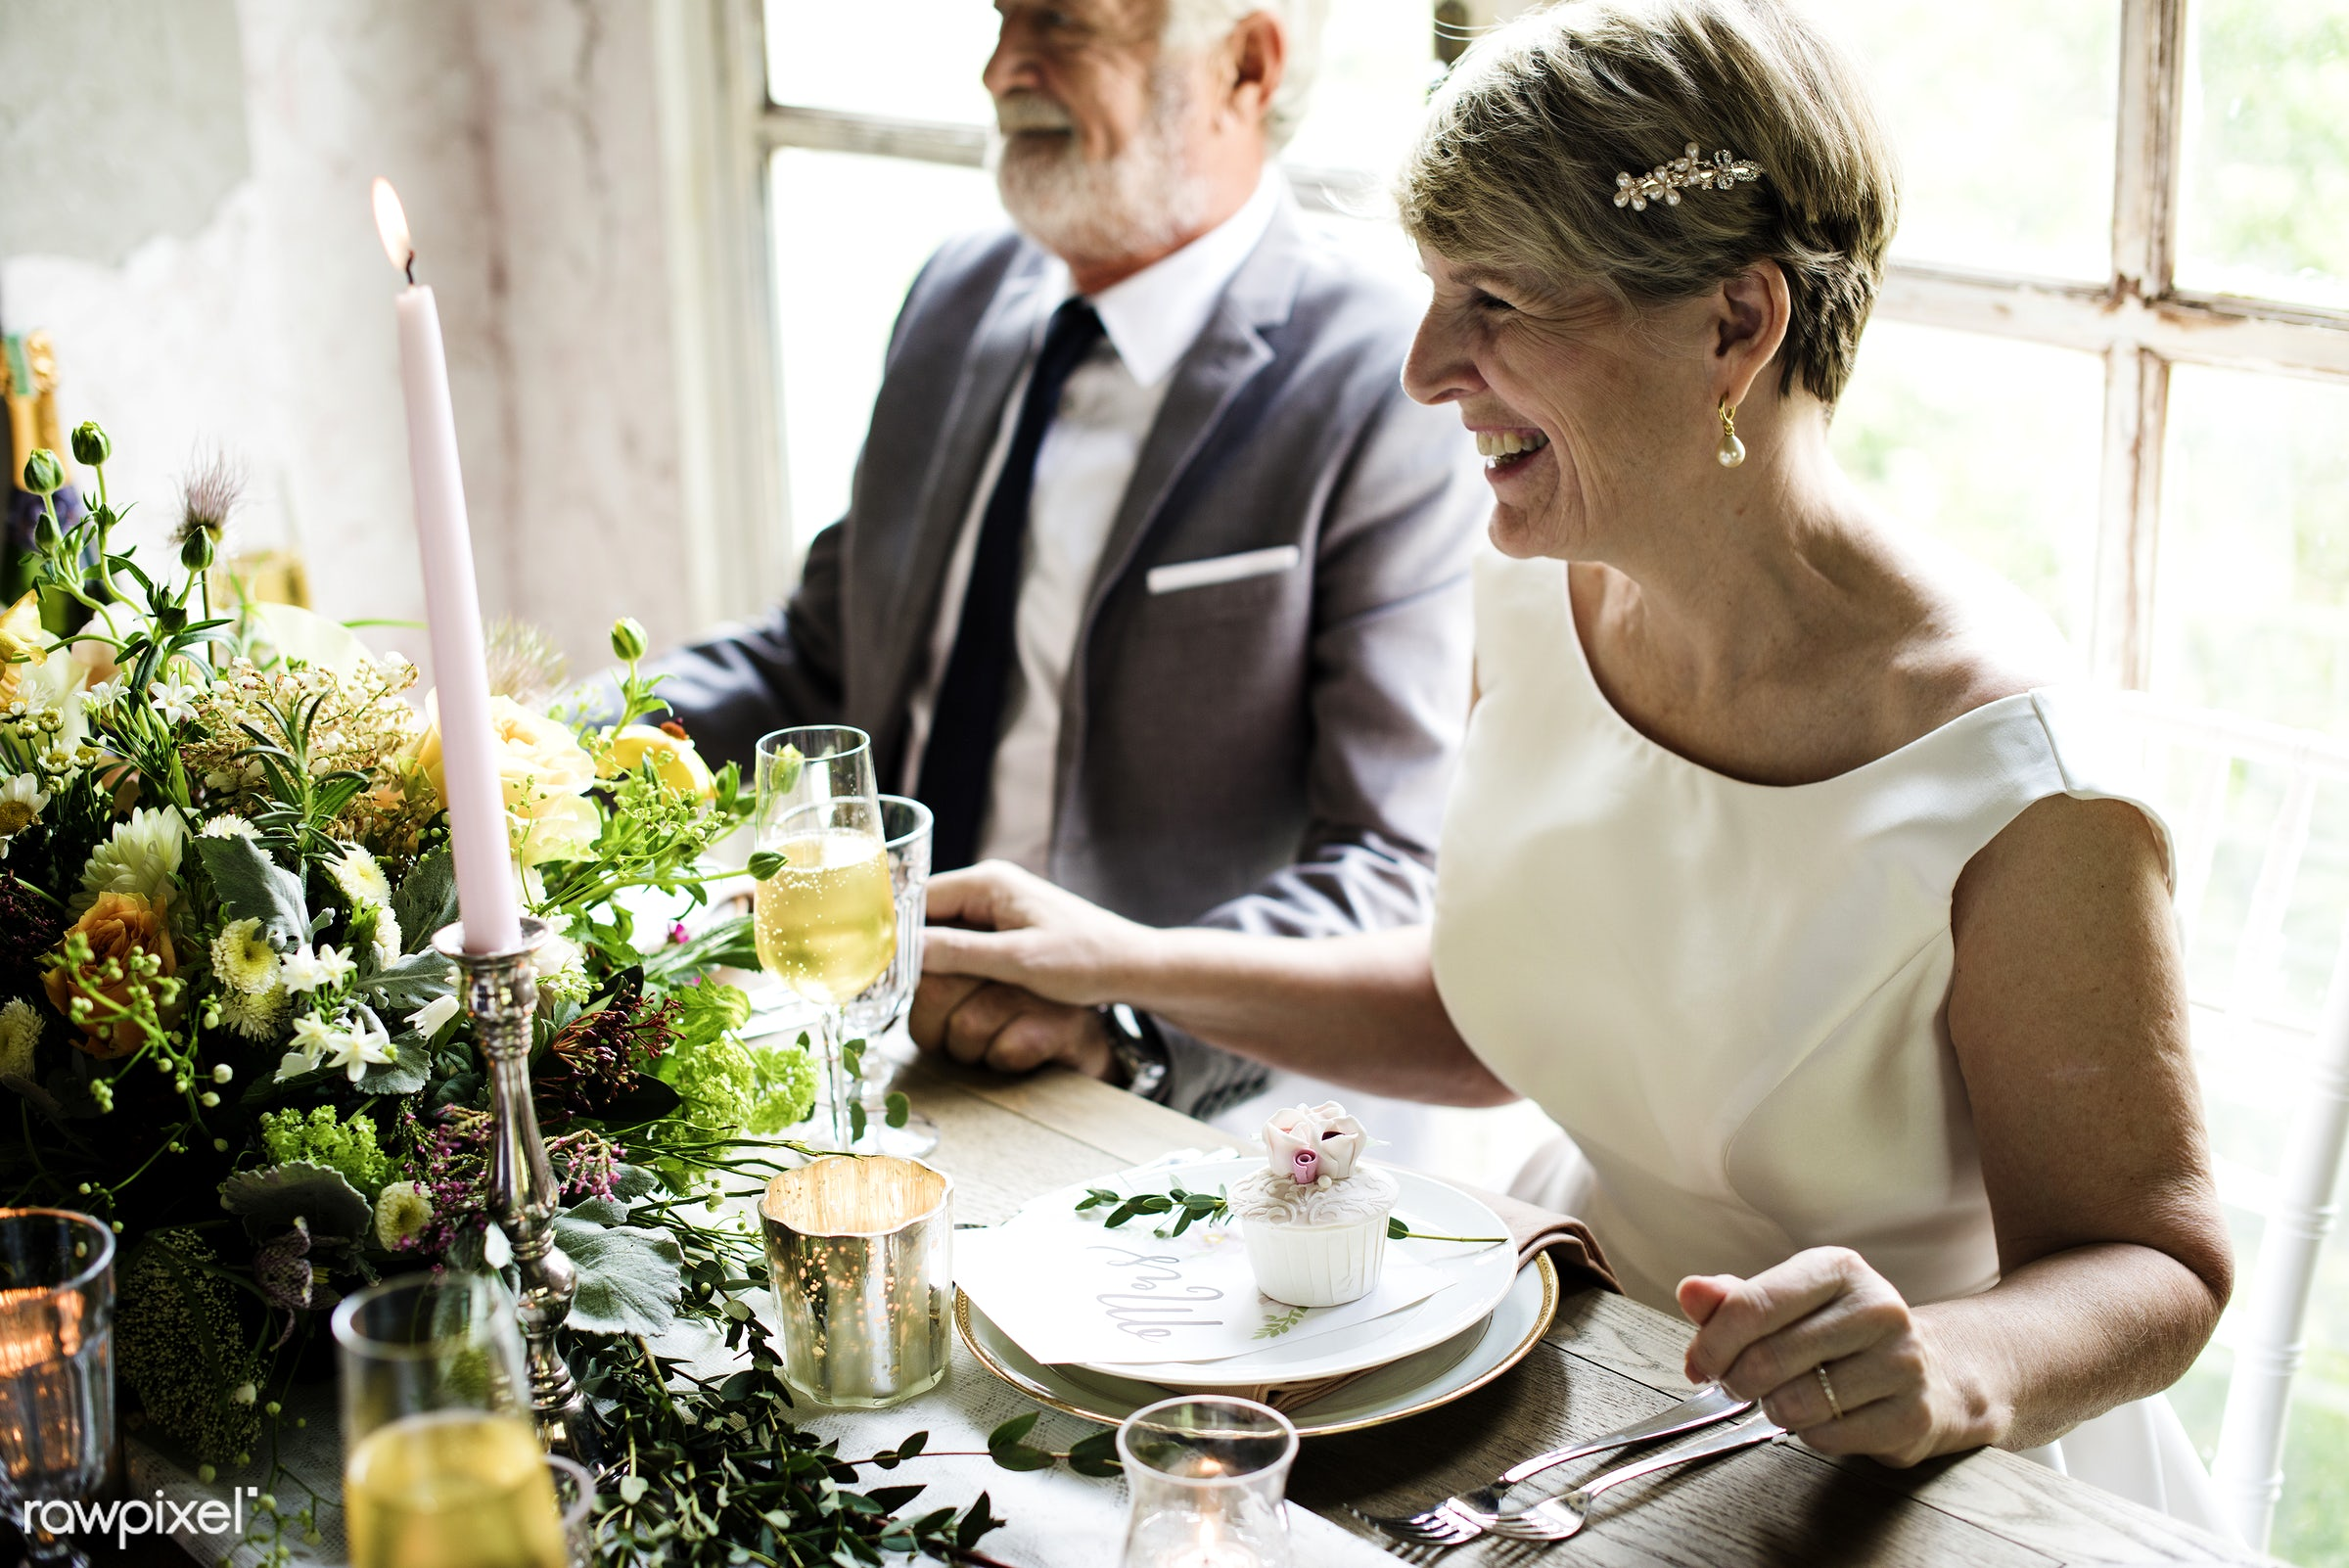 celebration, event, anniversary, banquet, ceremony, cheerful, dining table, flowers, hands, holding, love, occasion, people...